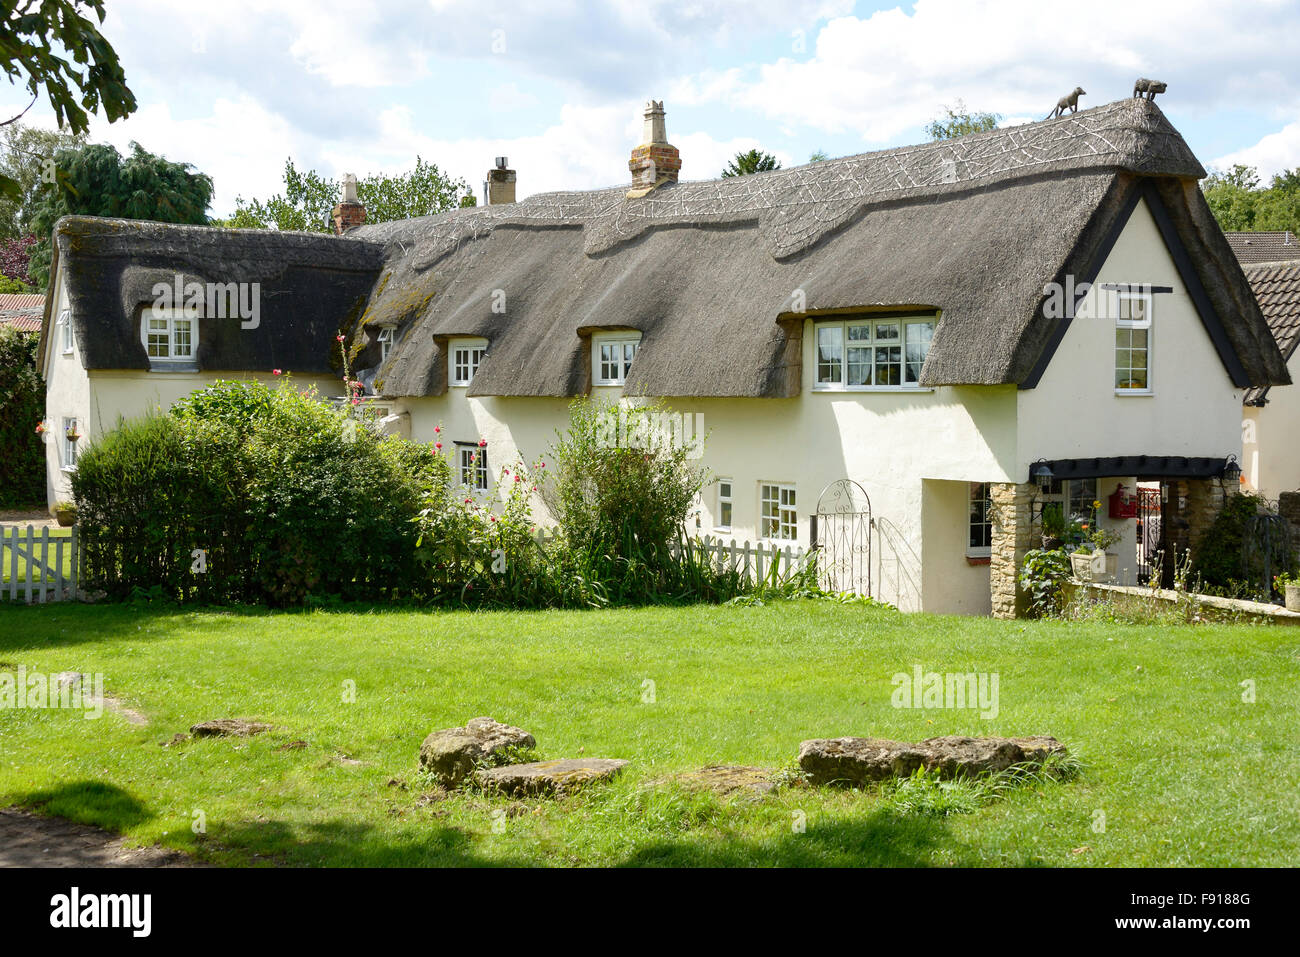 Thatched cottage, Stoke Bruerne, Northamptonshire, England, United Kingdom - Stock Image